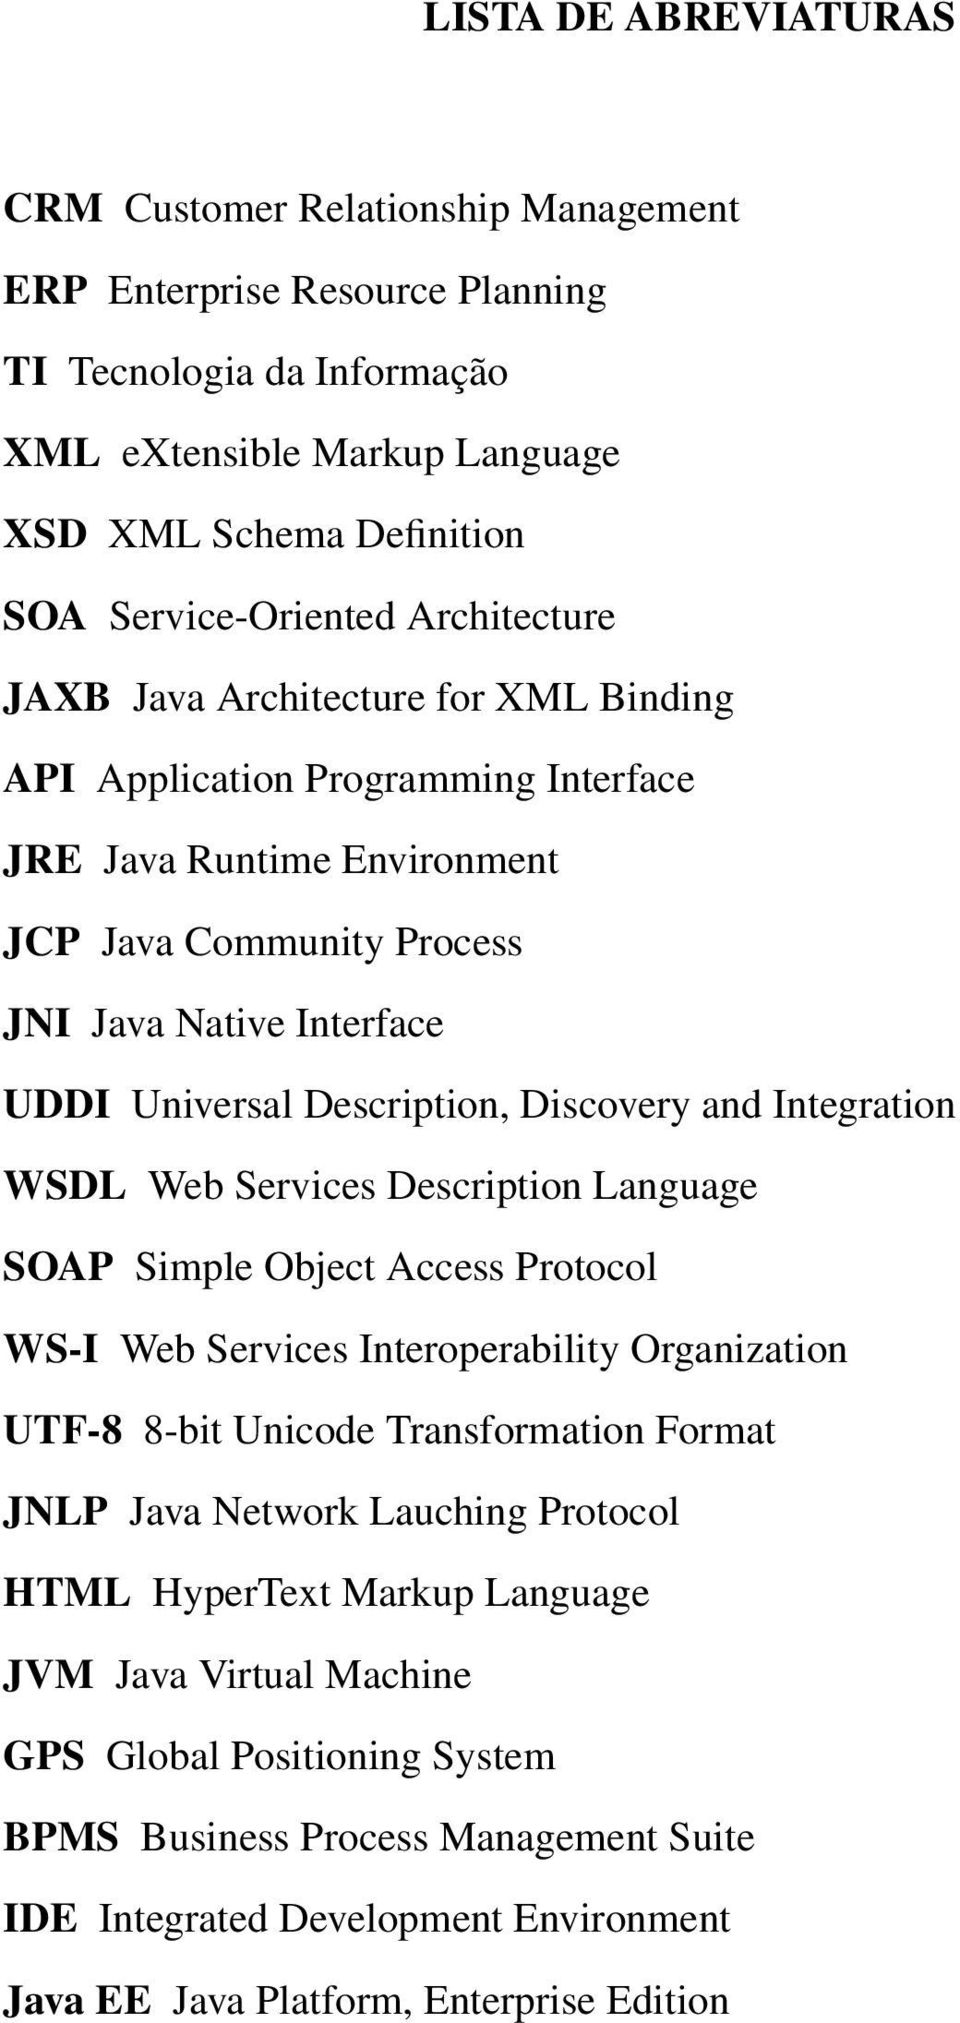 Discovery and Integration WSDL Web Services Description Language SOAP Simple Object Access Protocol WS-I Web Services Interoperability Organization UTF-8 8-bit Unicode Transformation Format JNLP Java